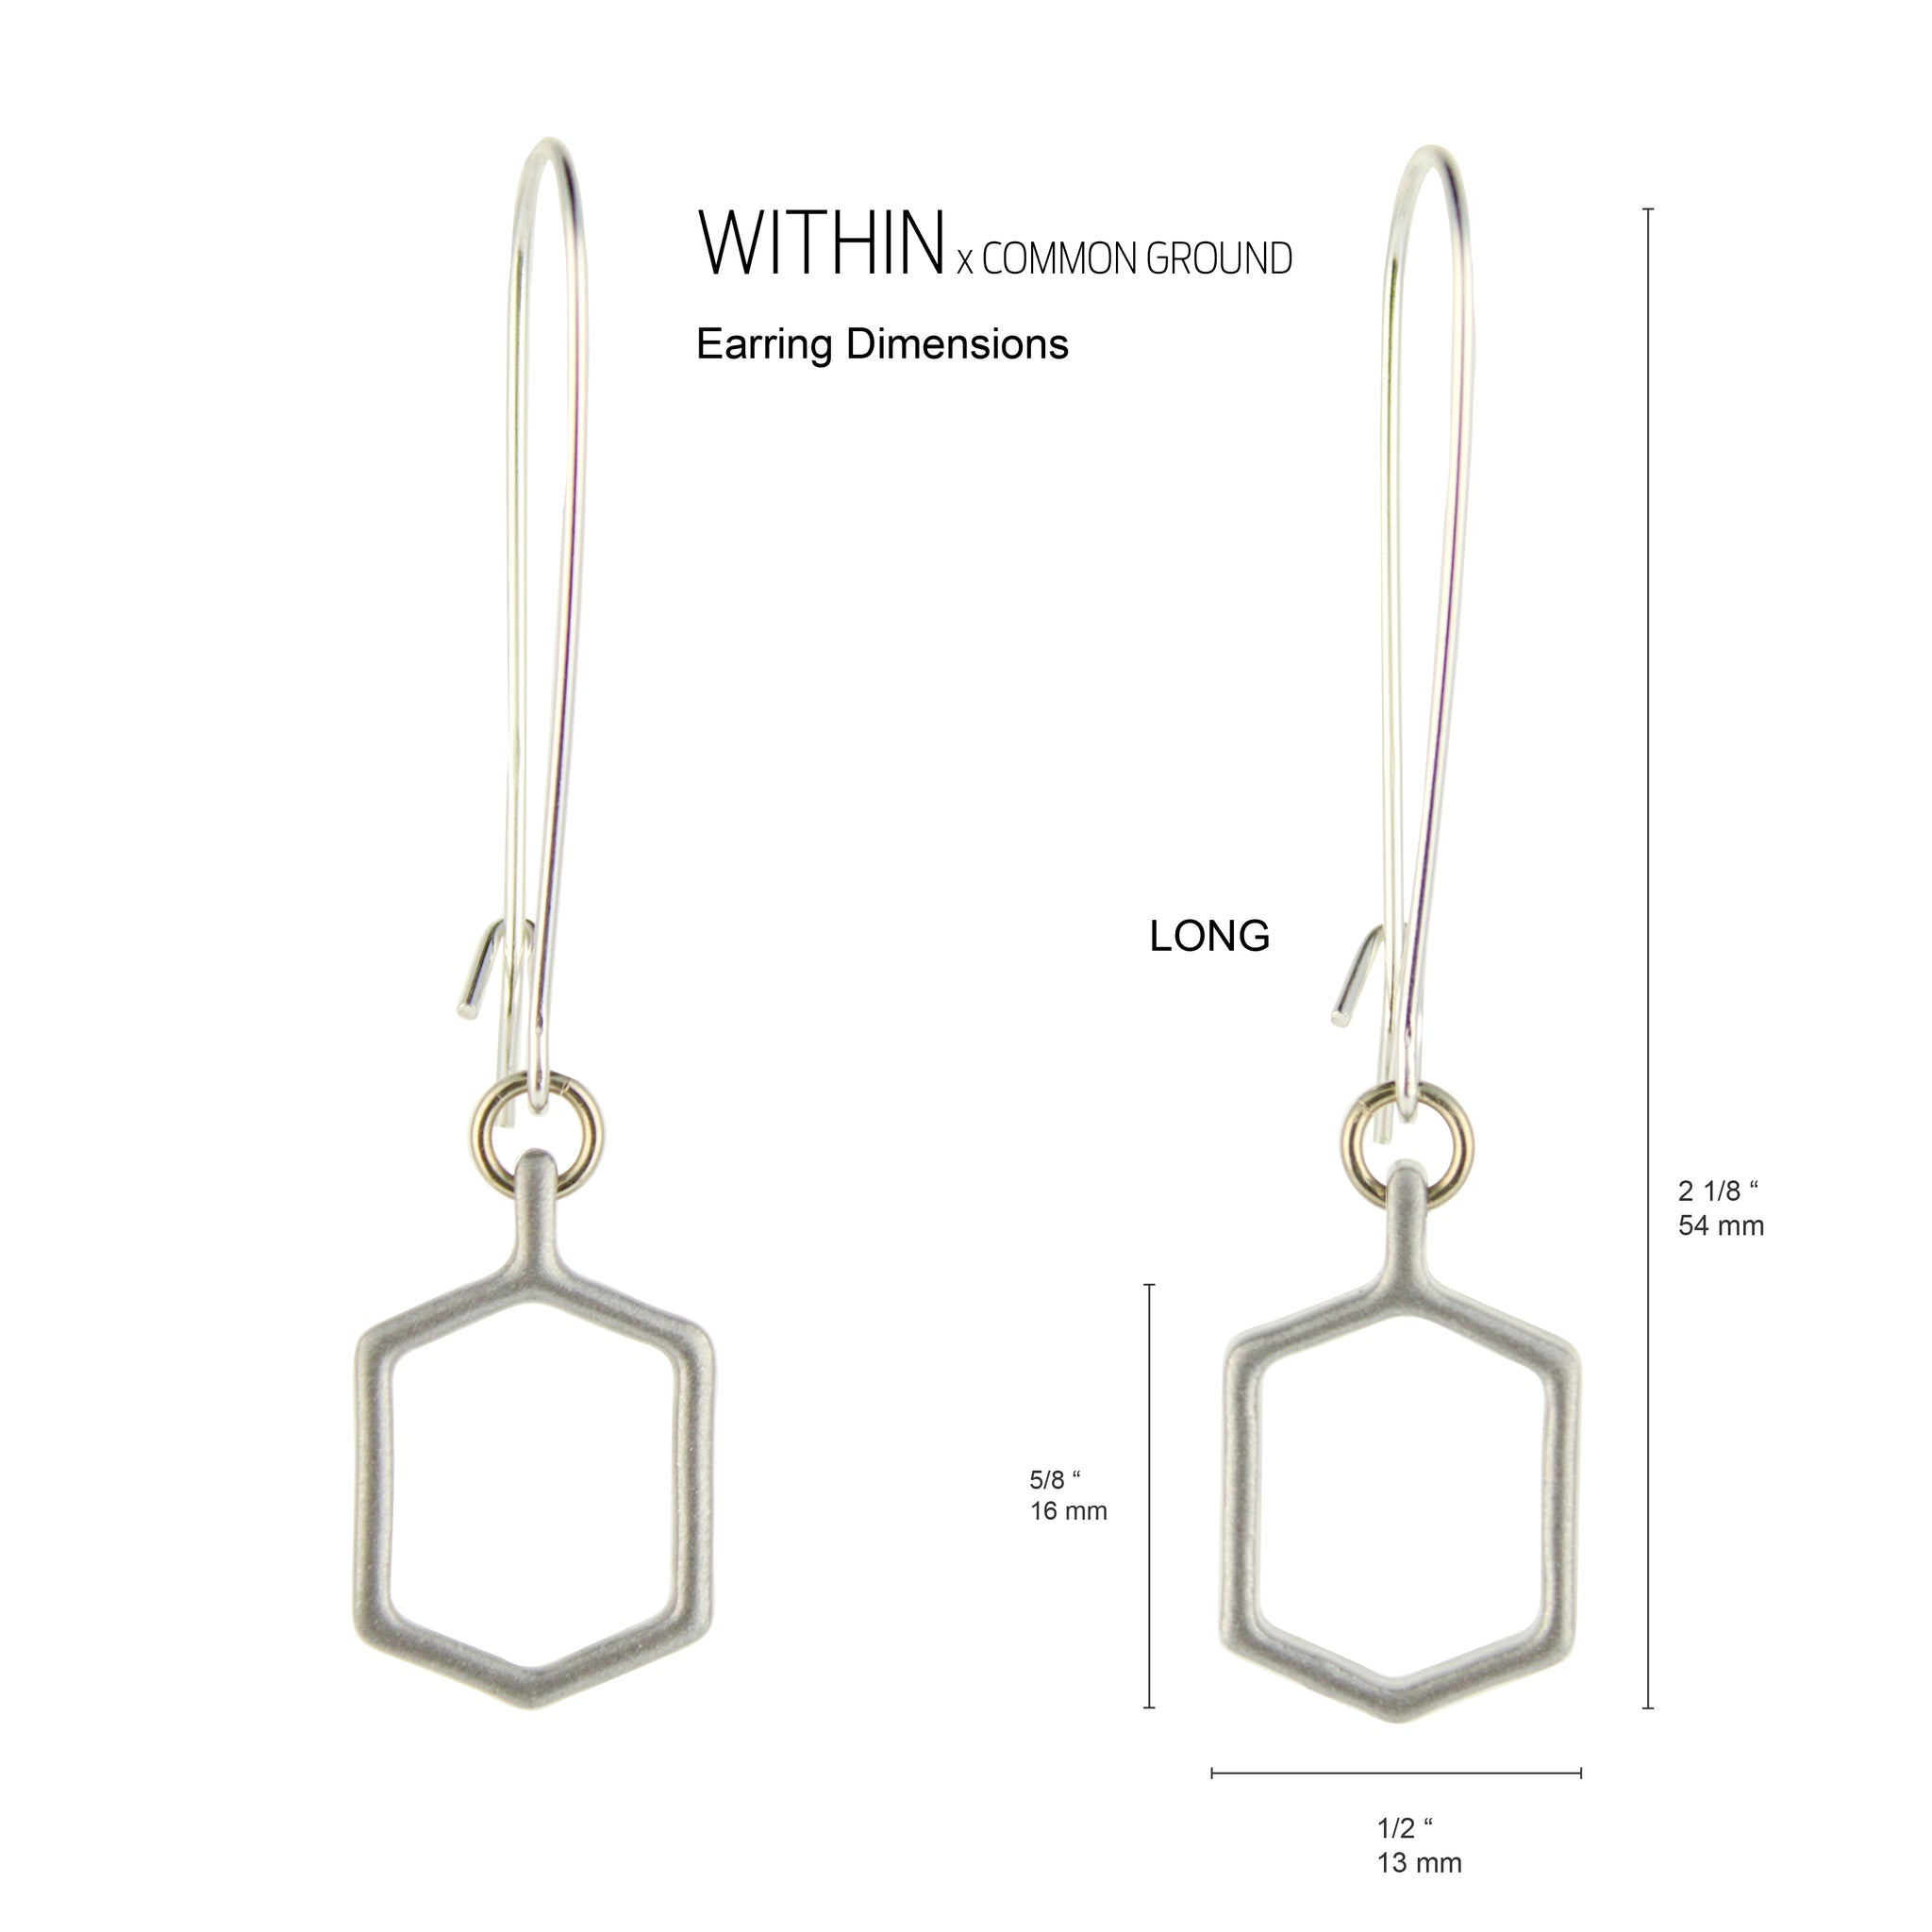 Quarry_Gray - WITHIN x COMMON GROUND Earring Flat View